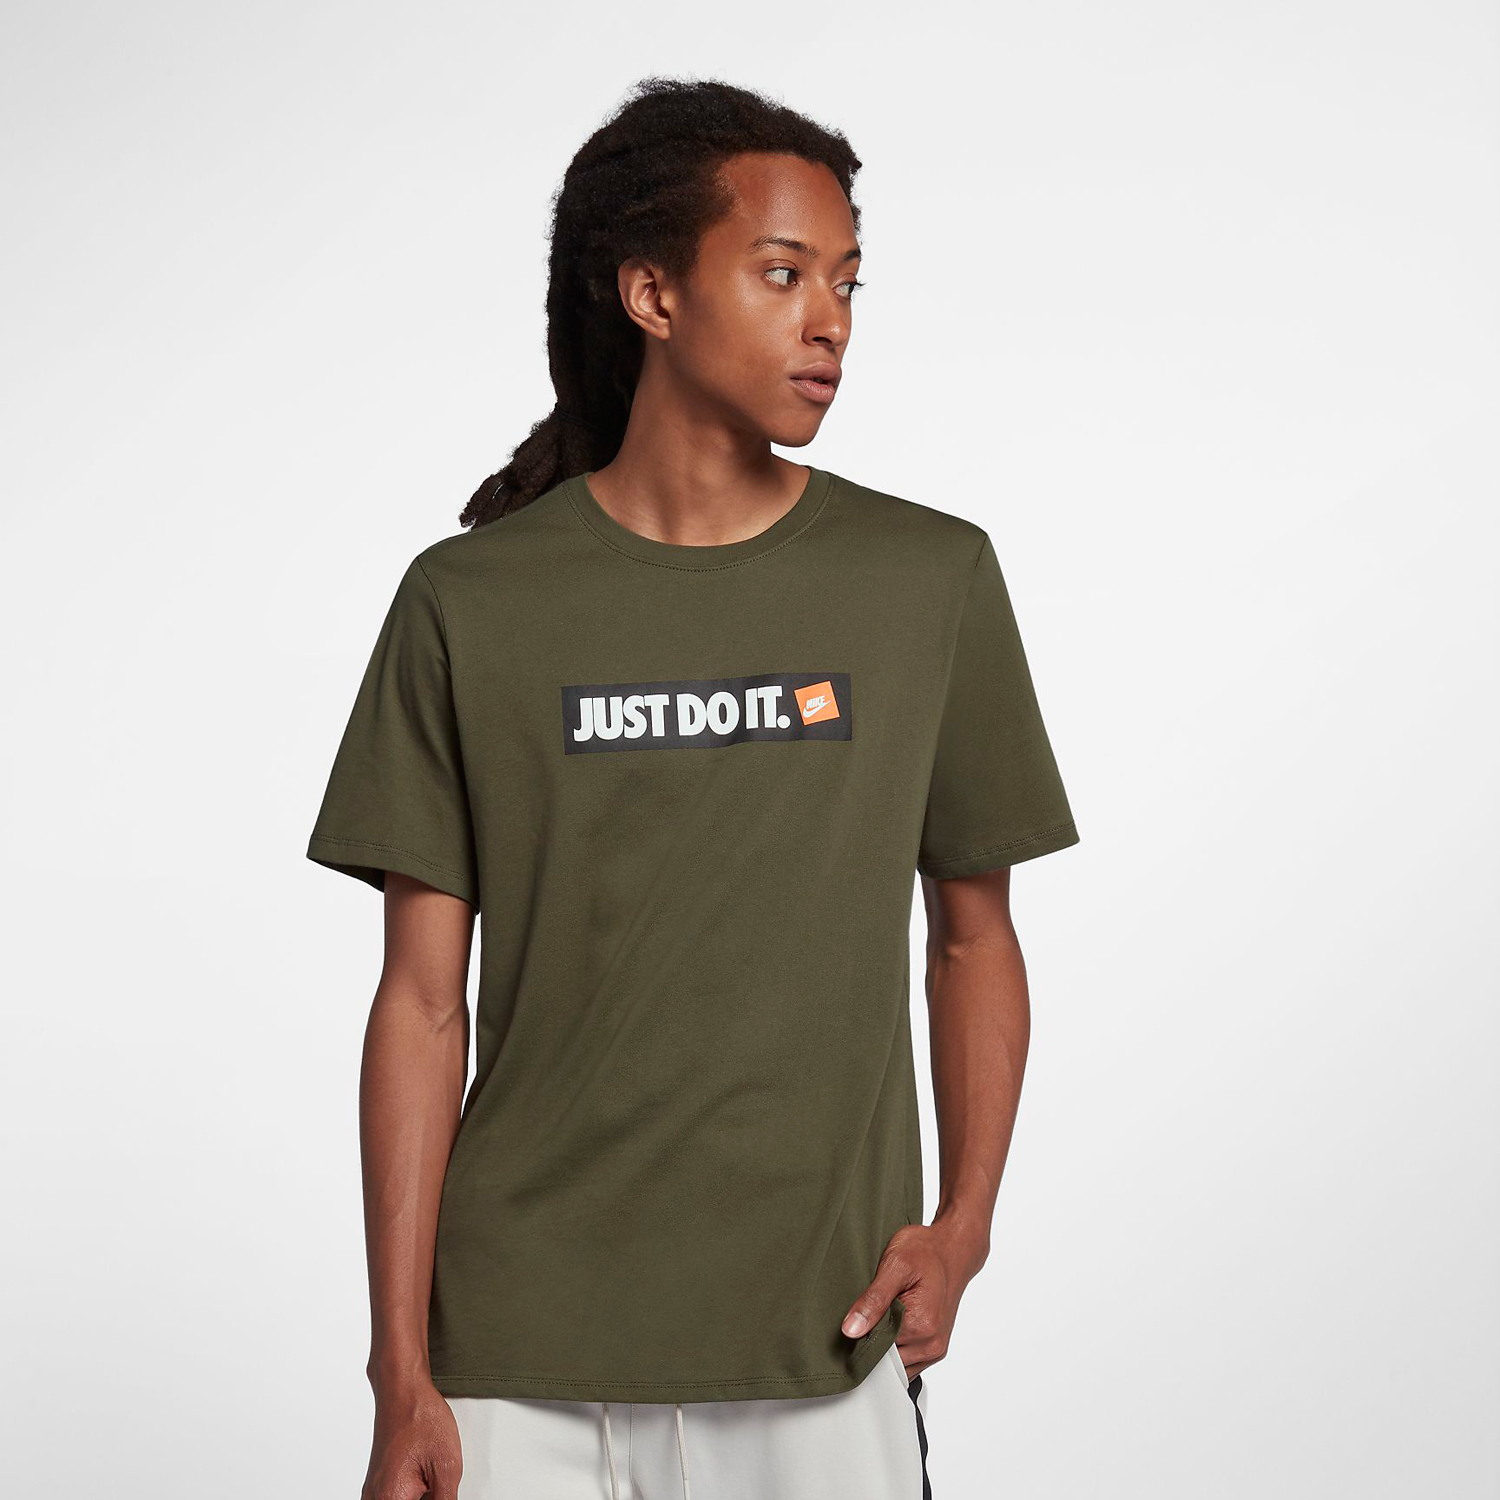 nike-sportswear-just-do-it-t-shirt-green